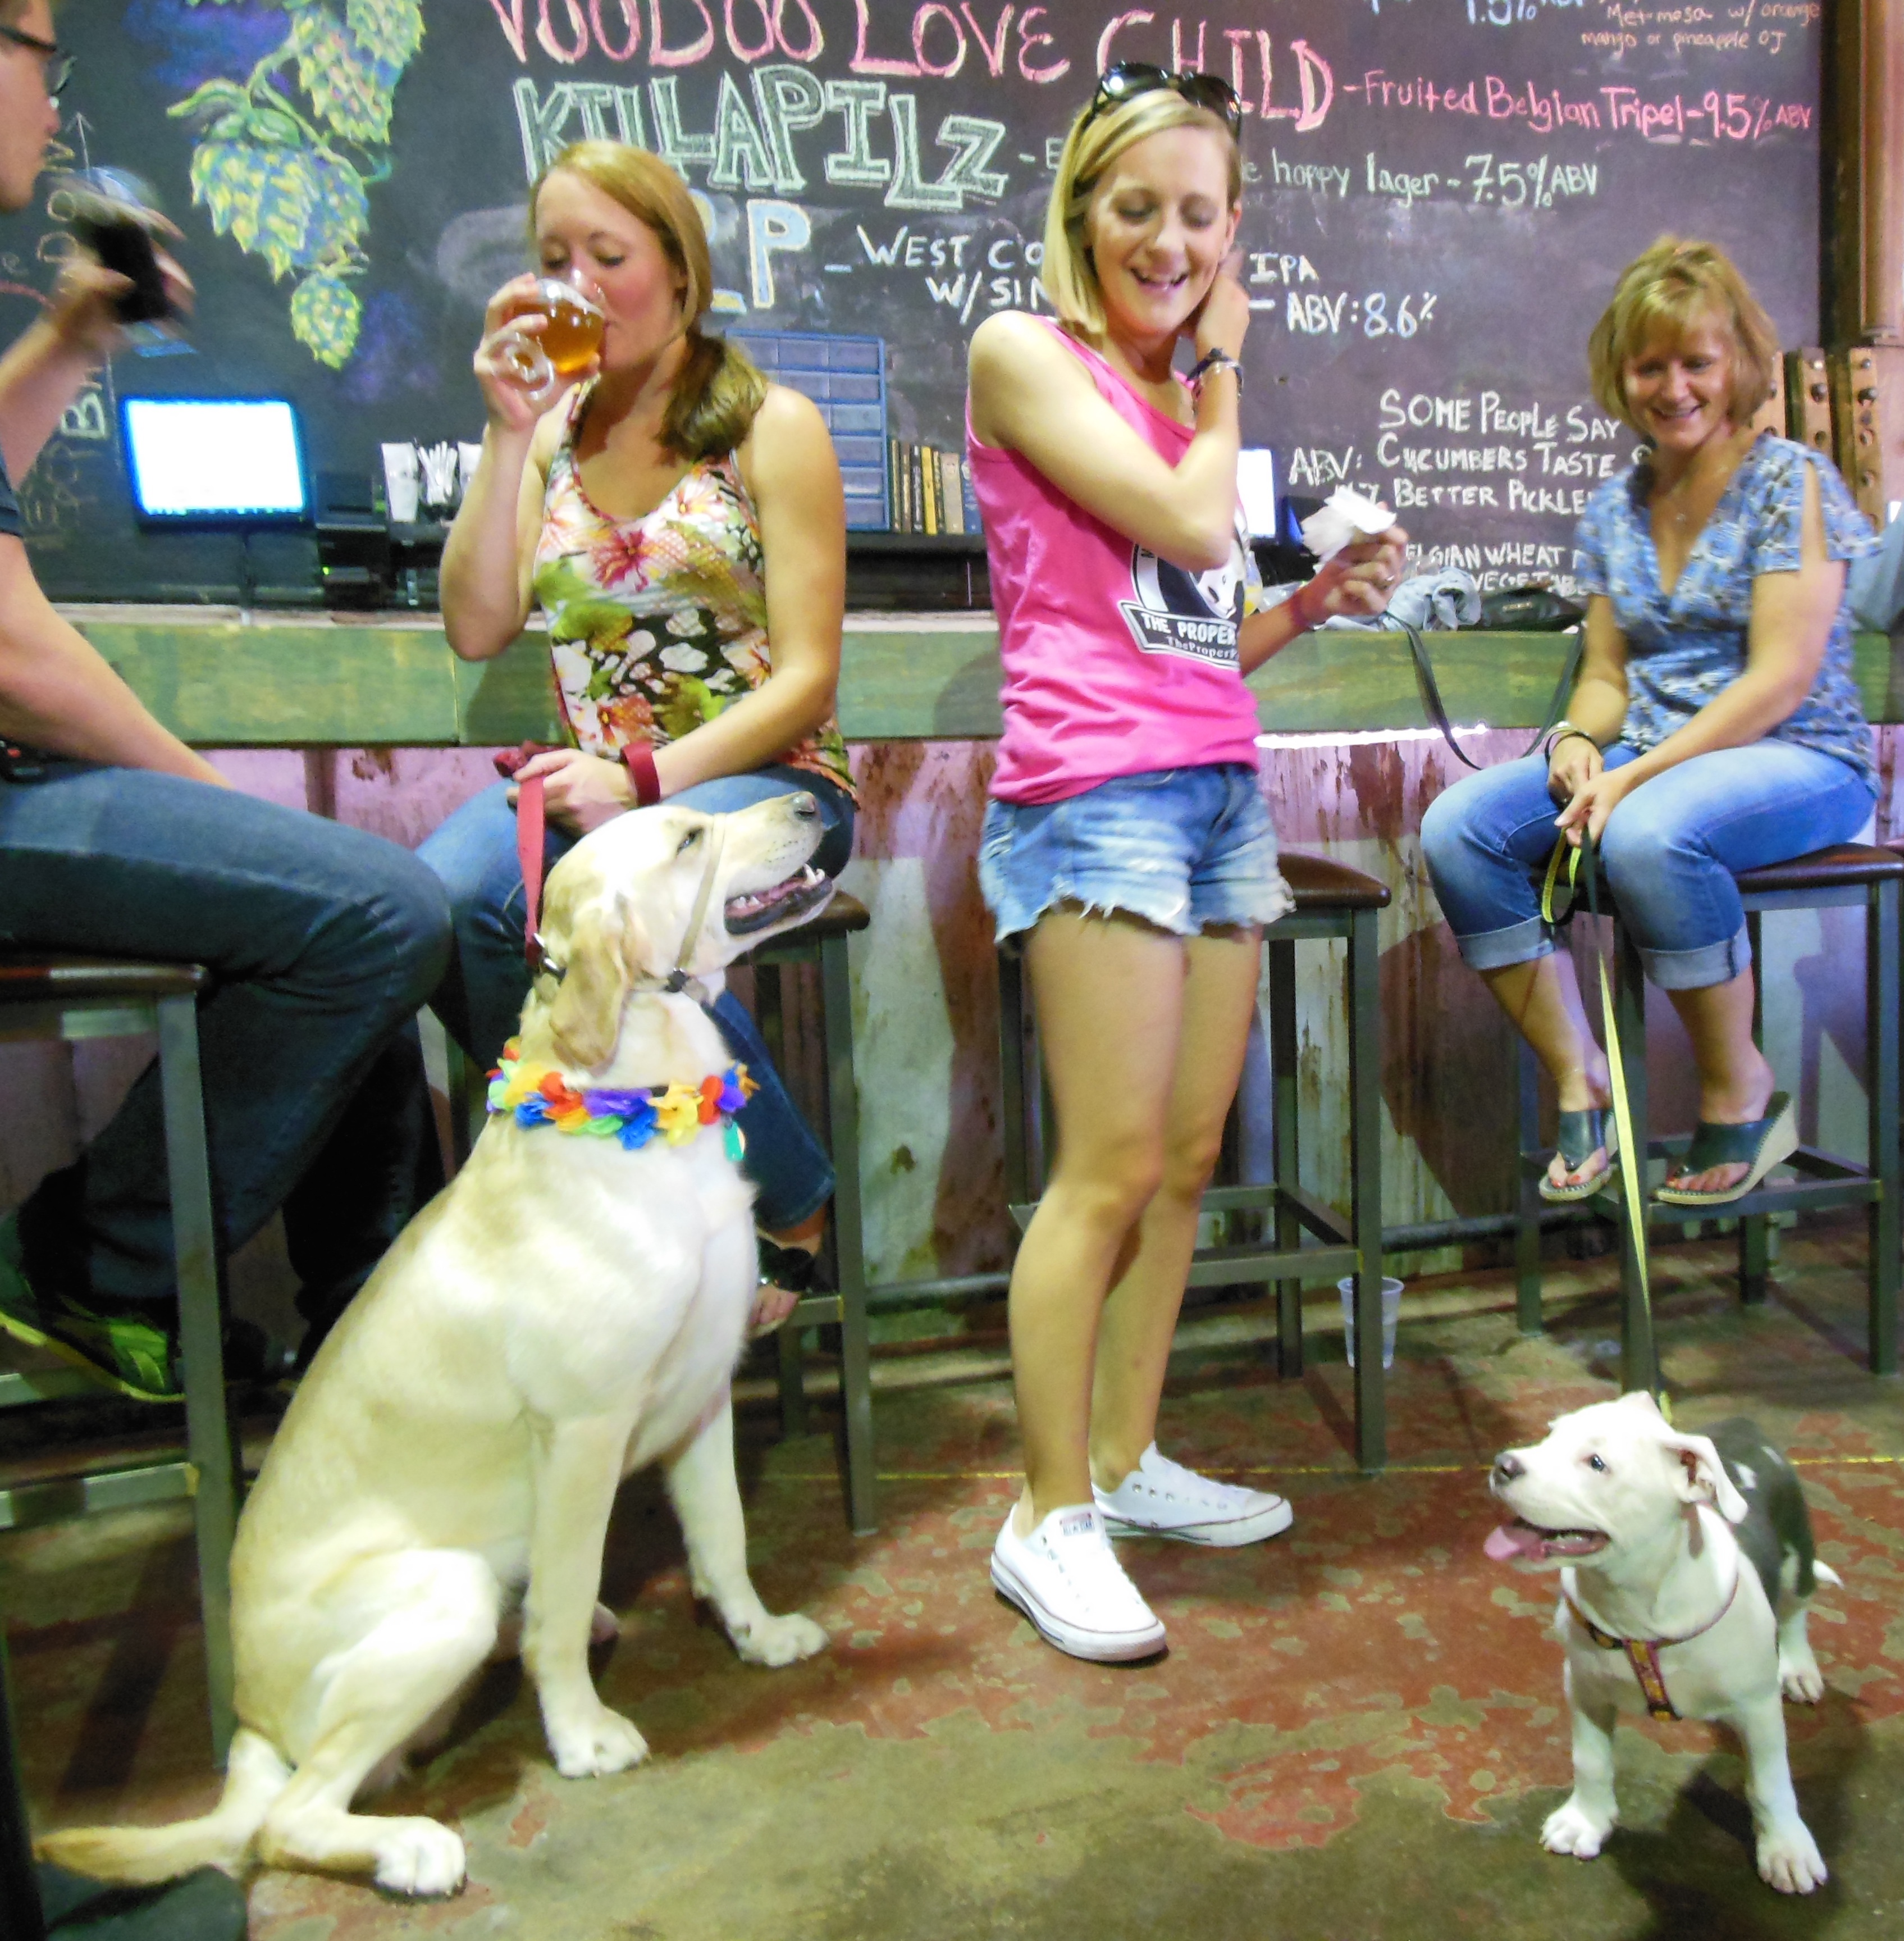 Patrons at Voodoo Homestead enjoy the suds while their dogs just soak in the atmosphere.